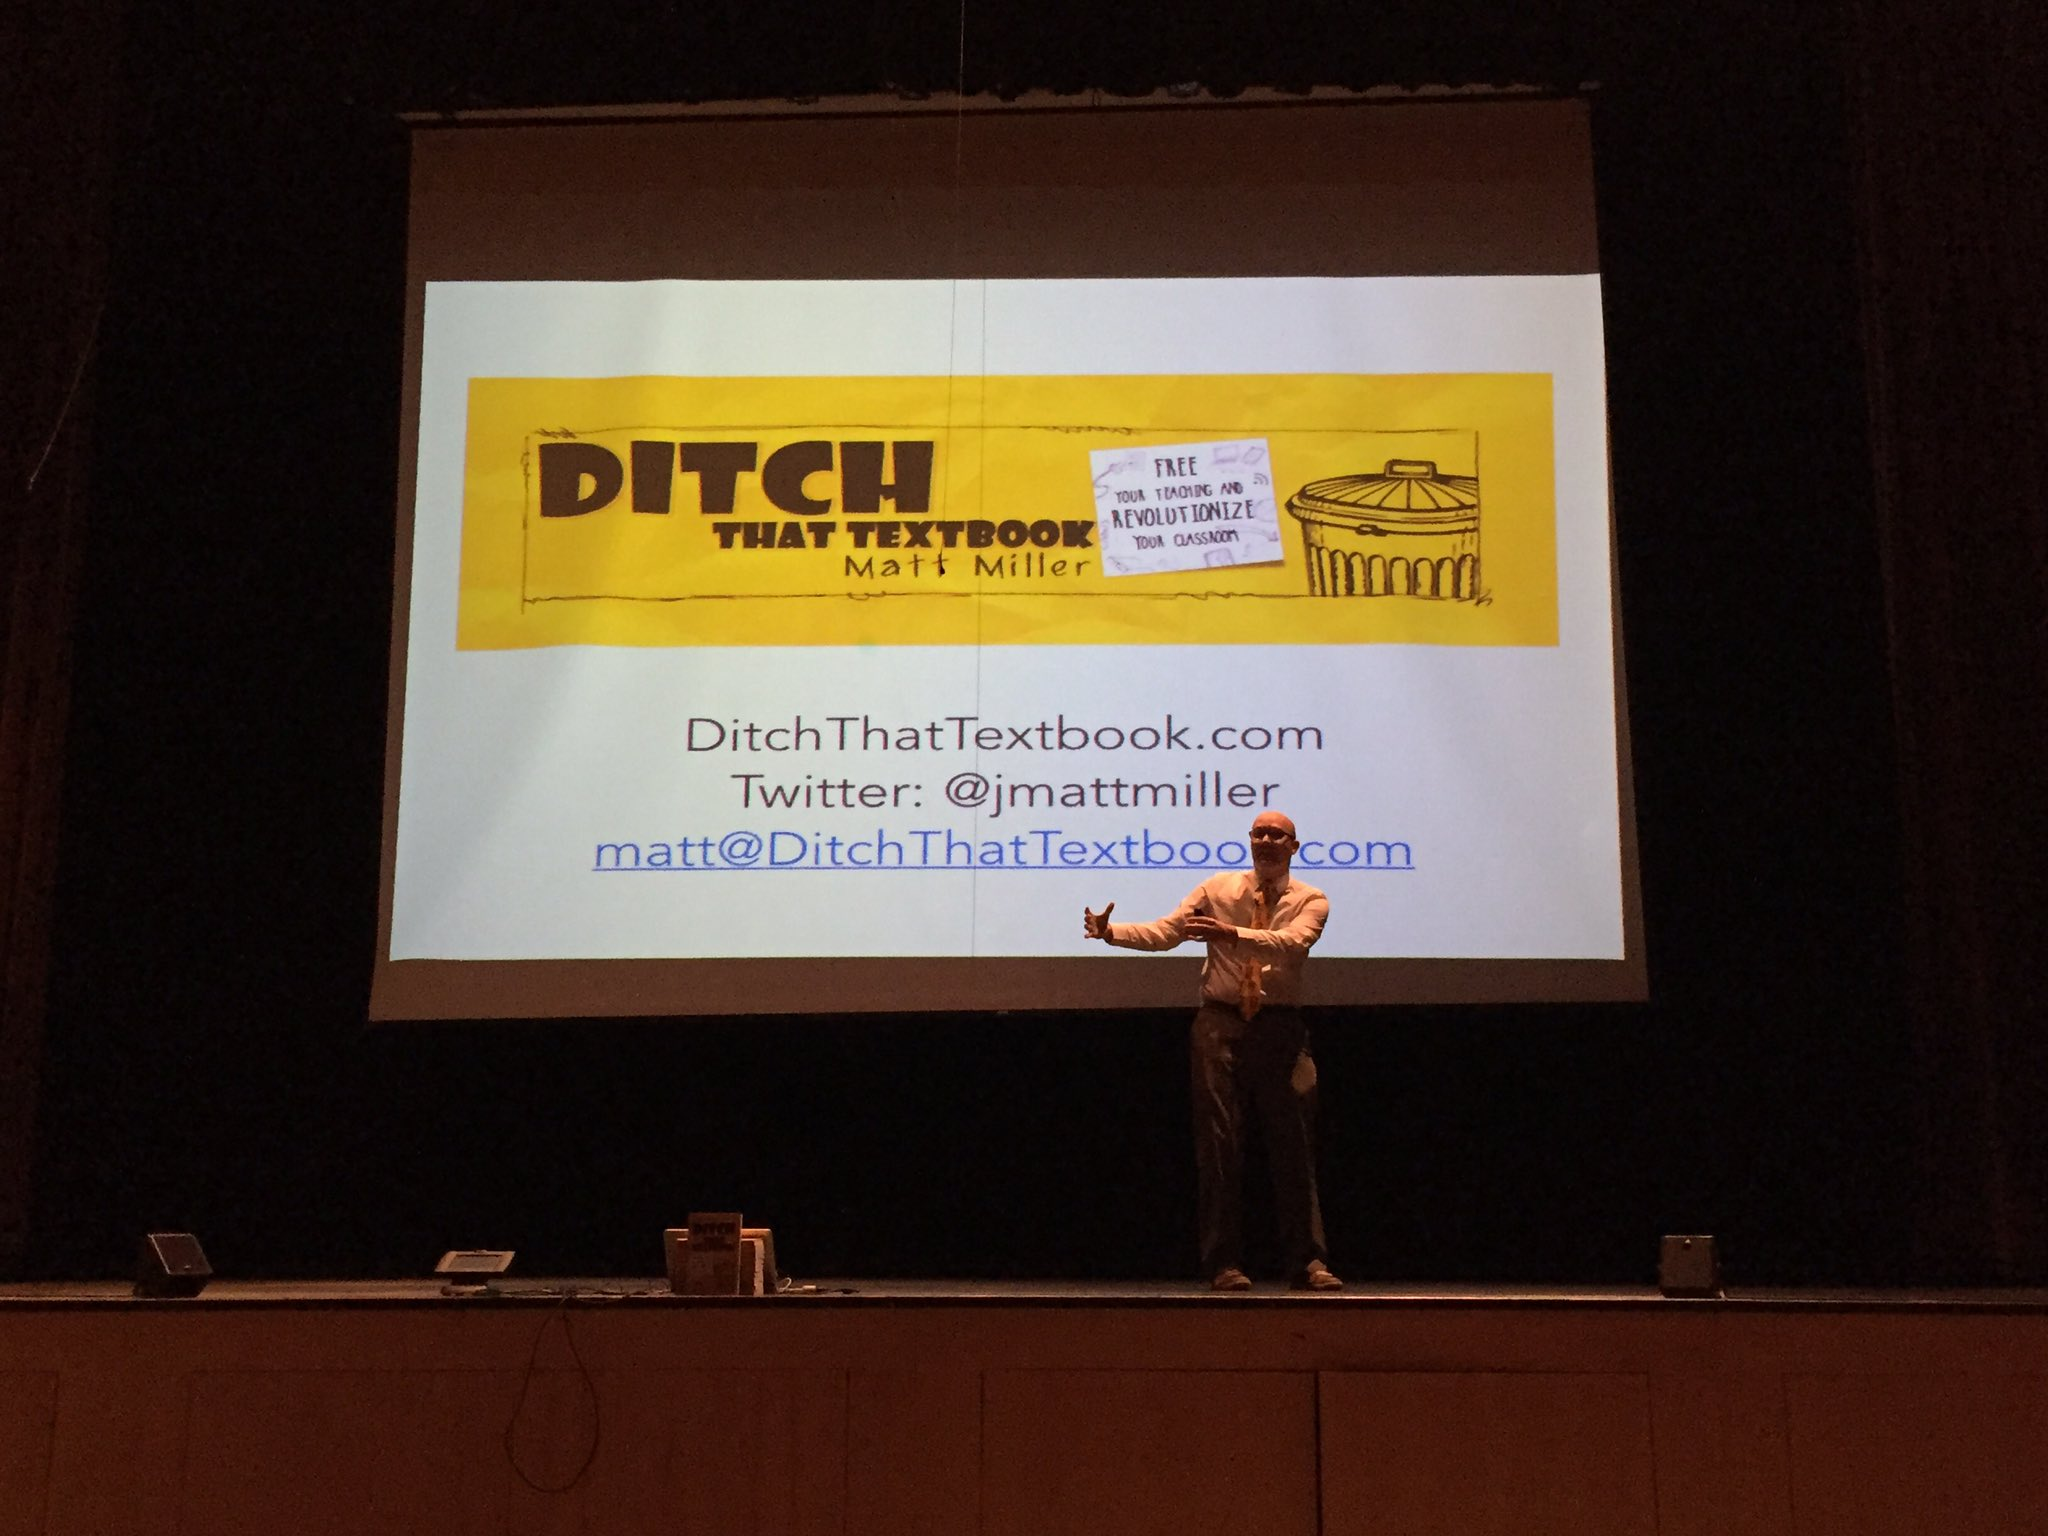 Pumped to hear @jmattmiller speak! #323learns #ditchbook https://t.co/YiNlX3wXpW